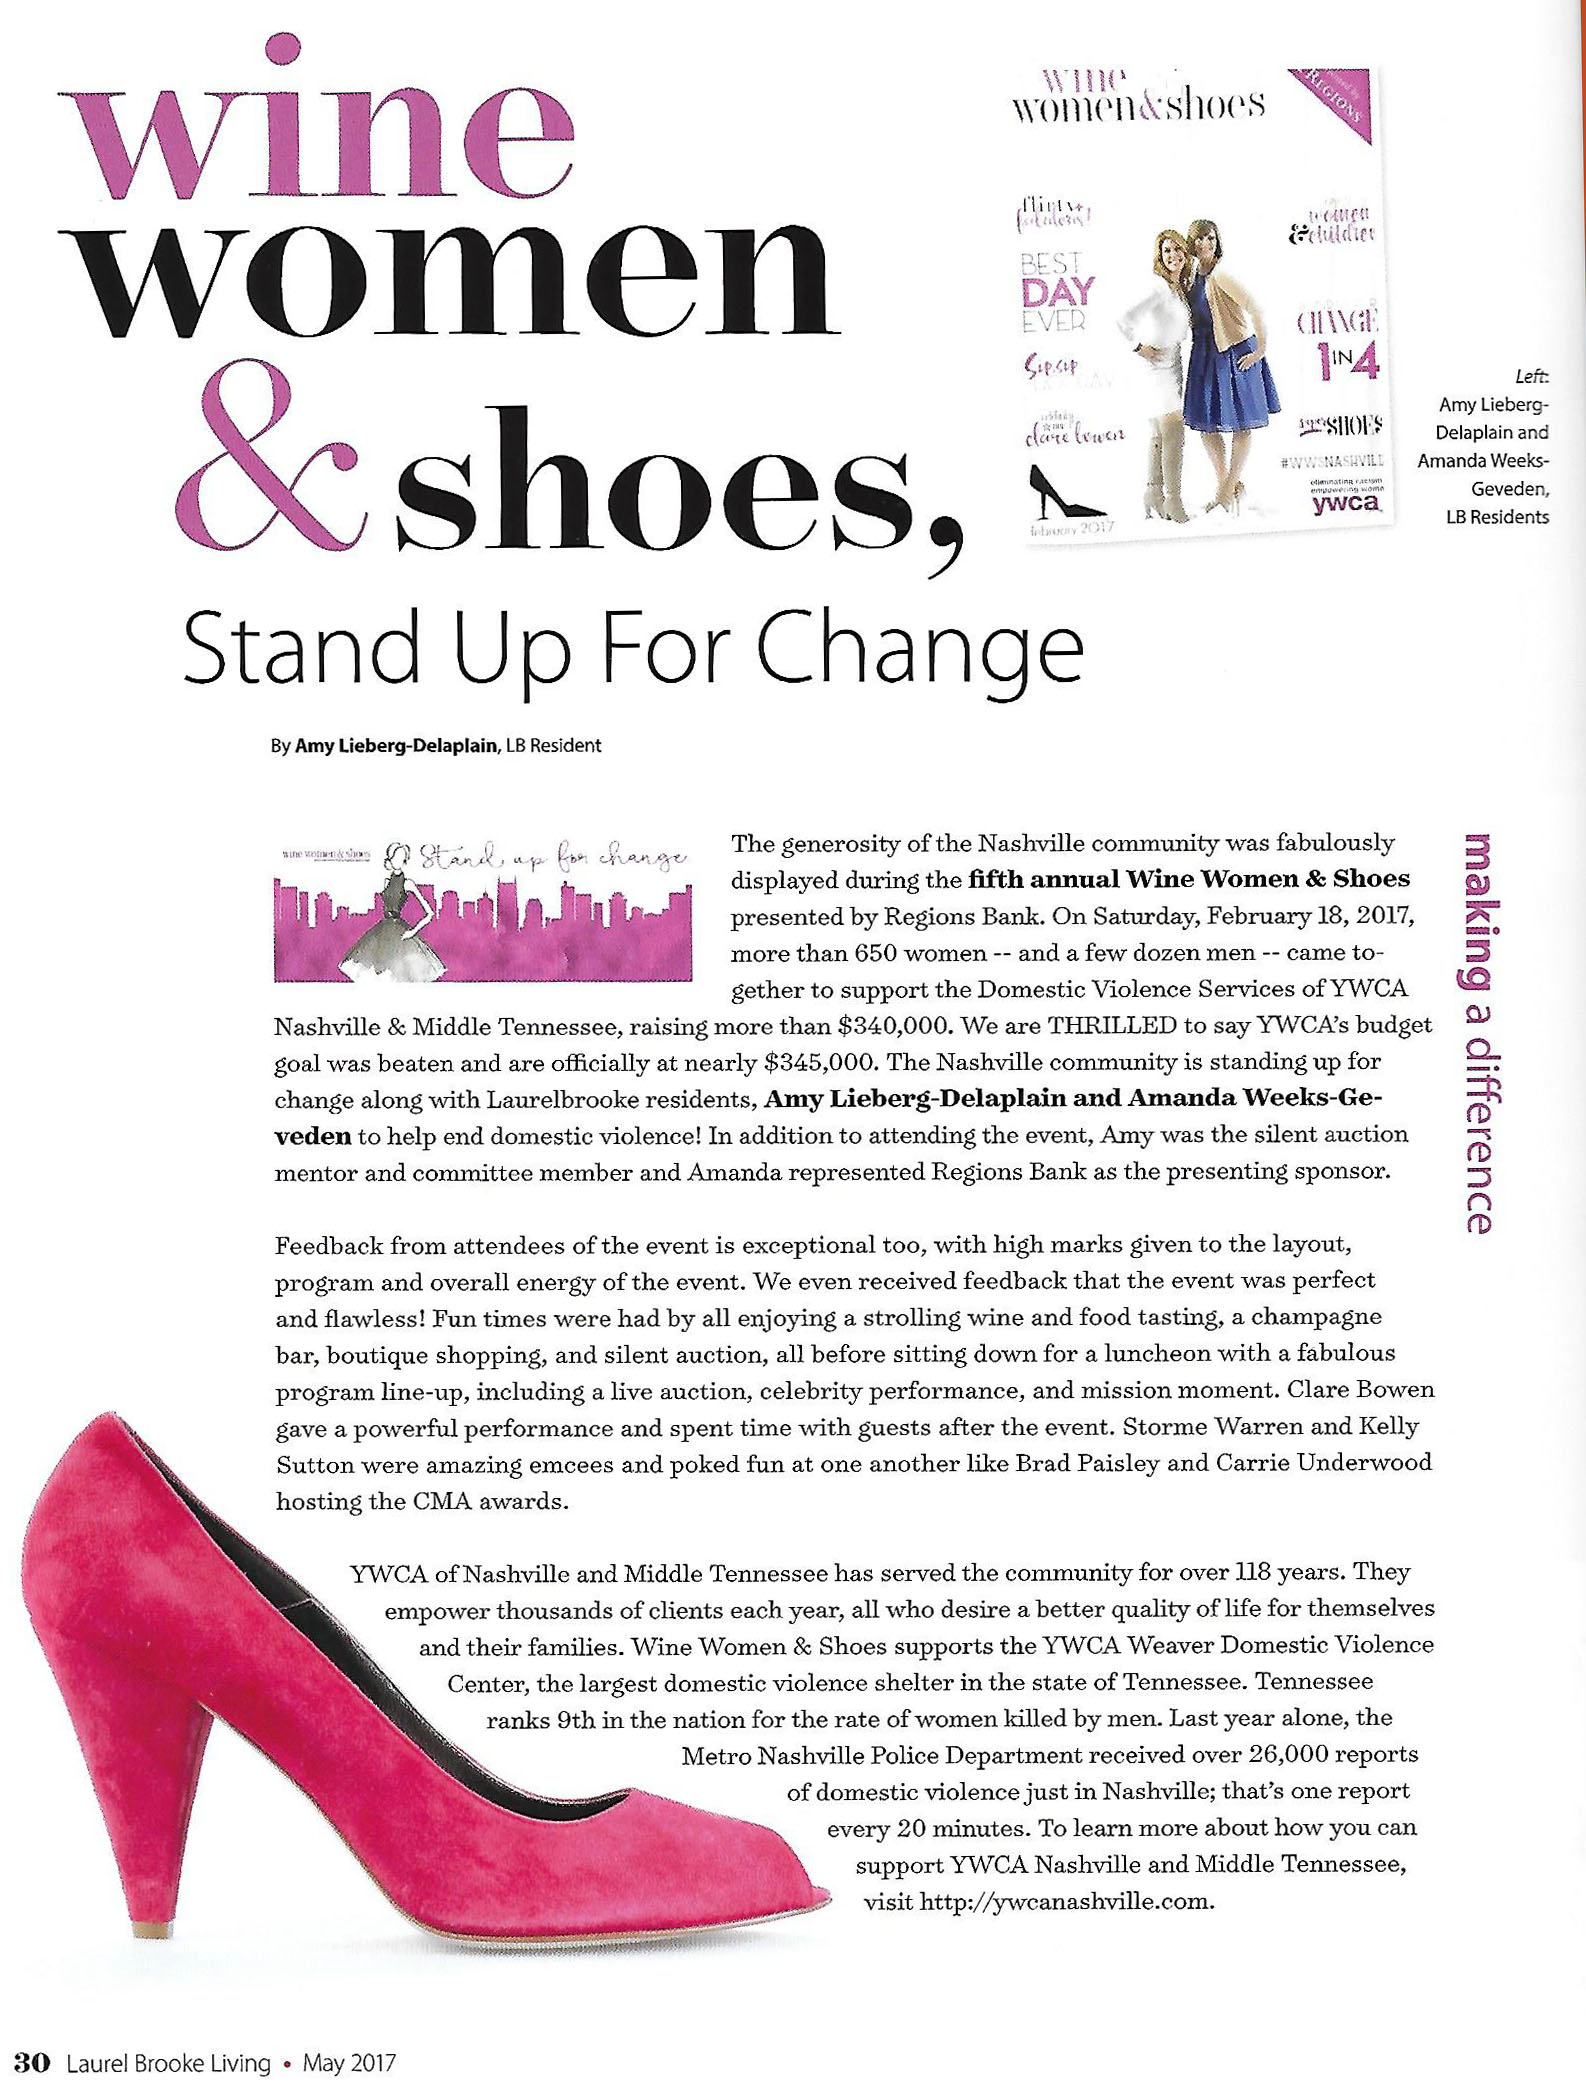 LB article on shoe event.jpg